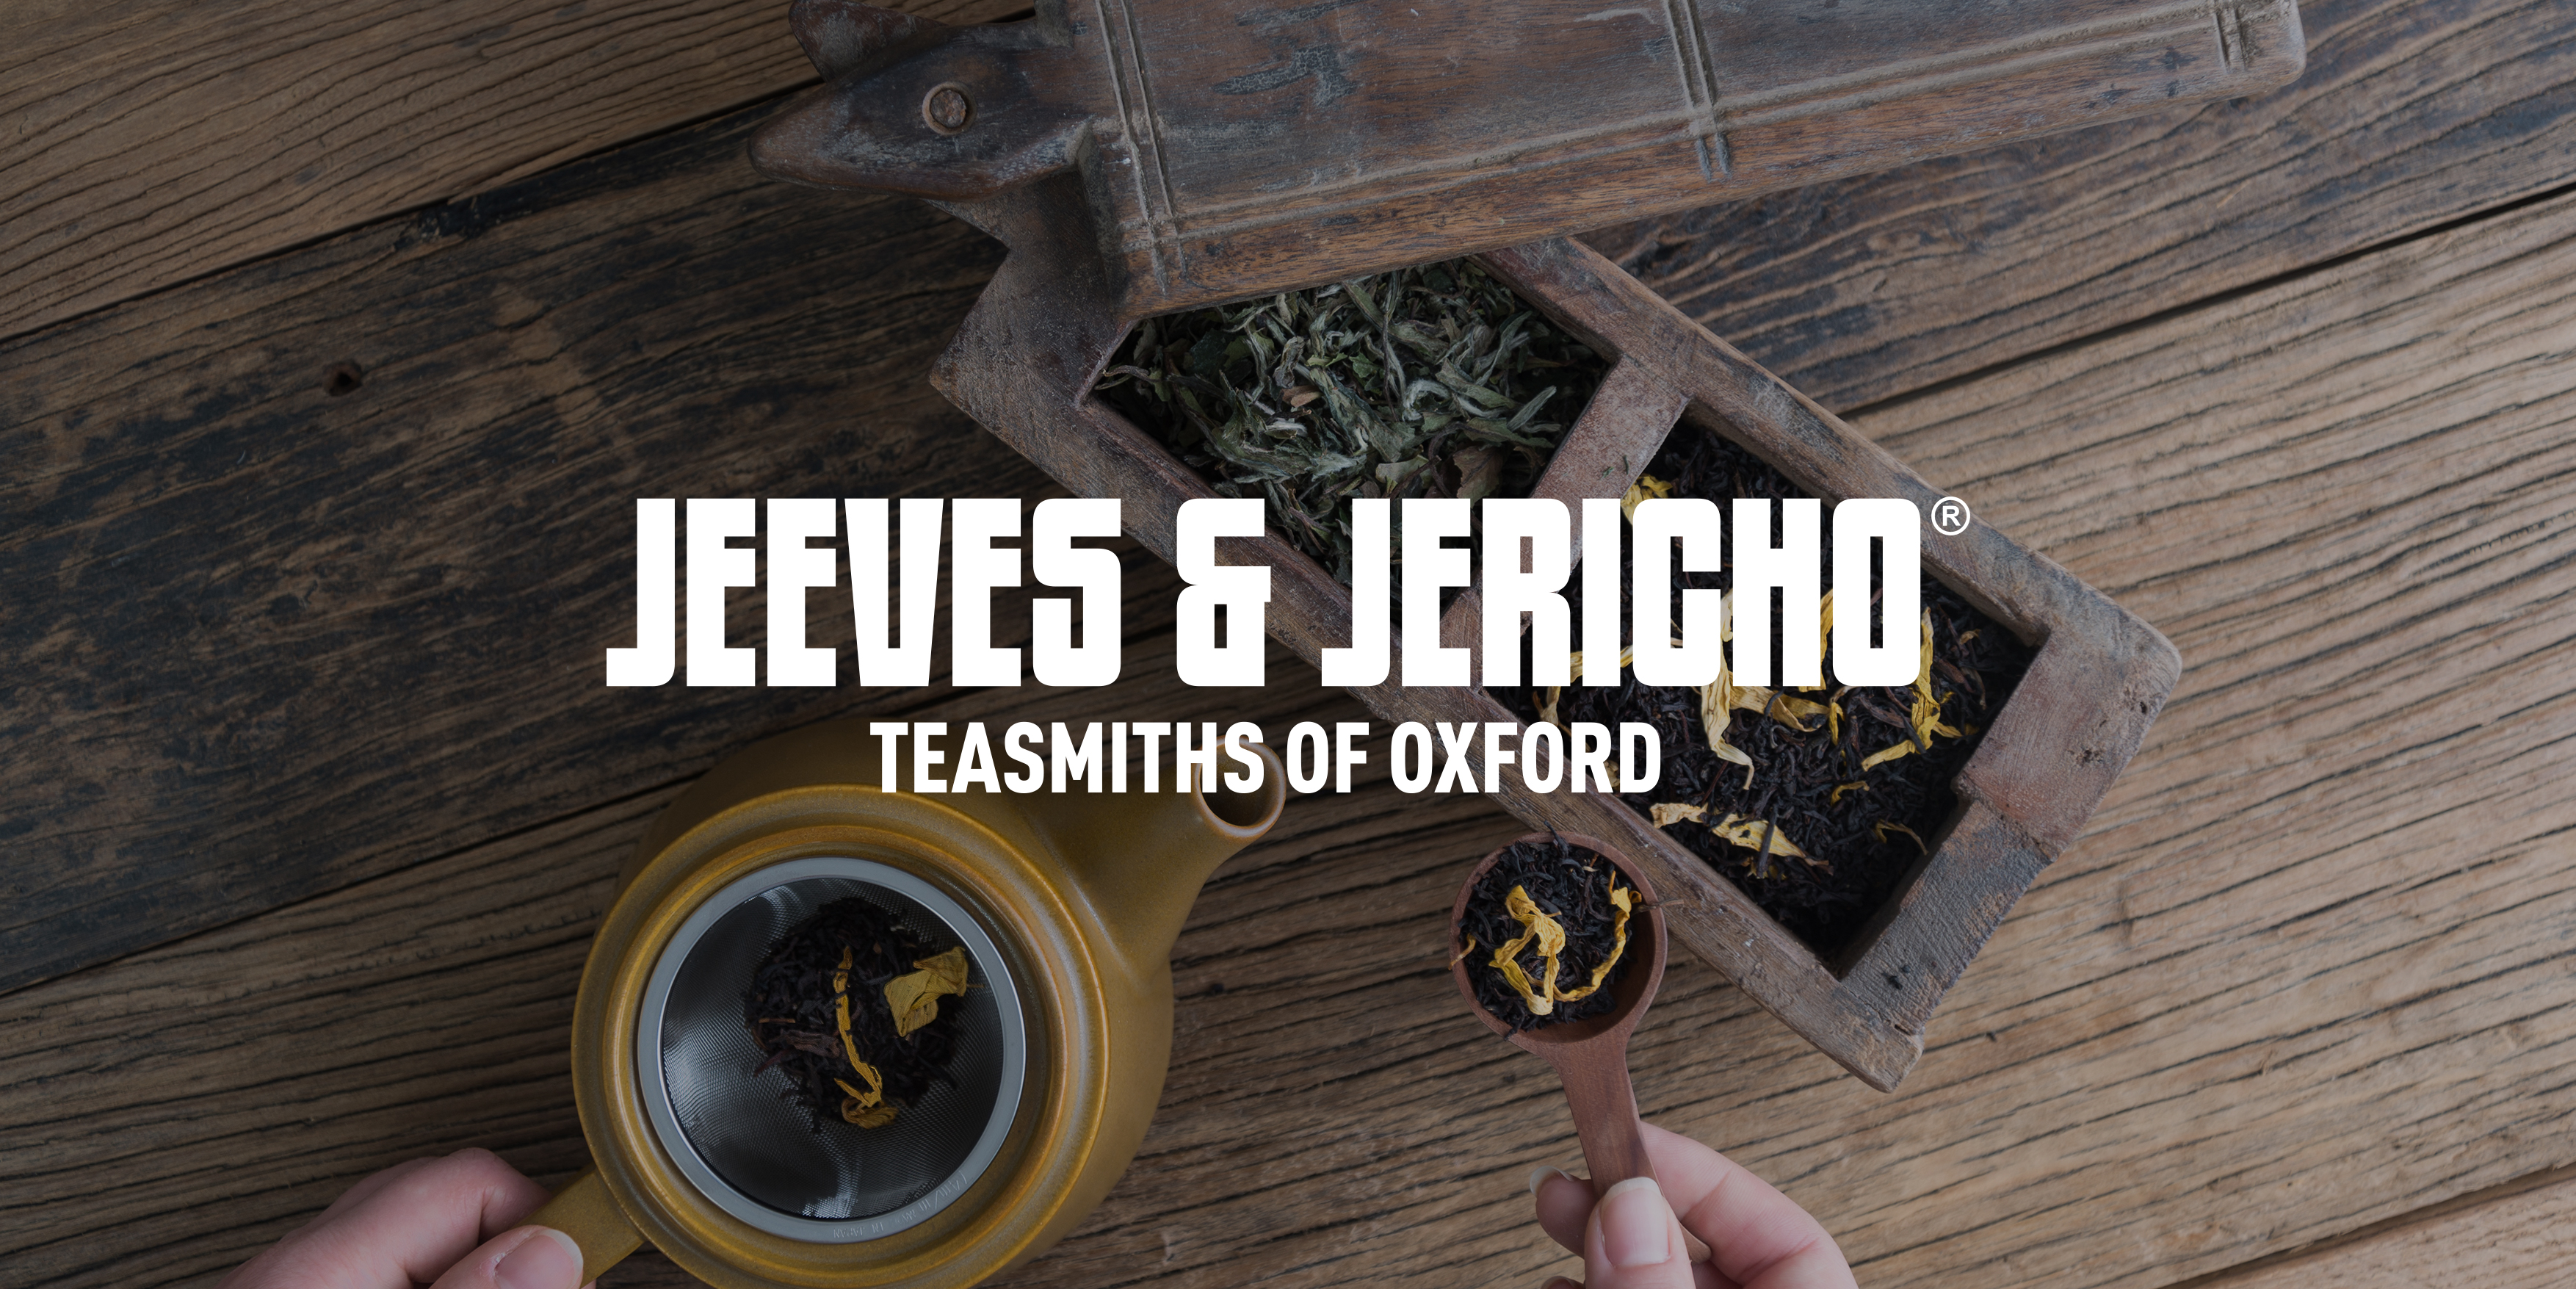 Jeeves & Jericho Tea Branding